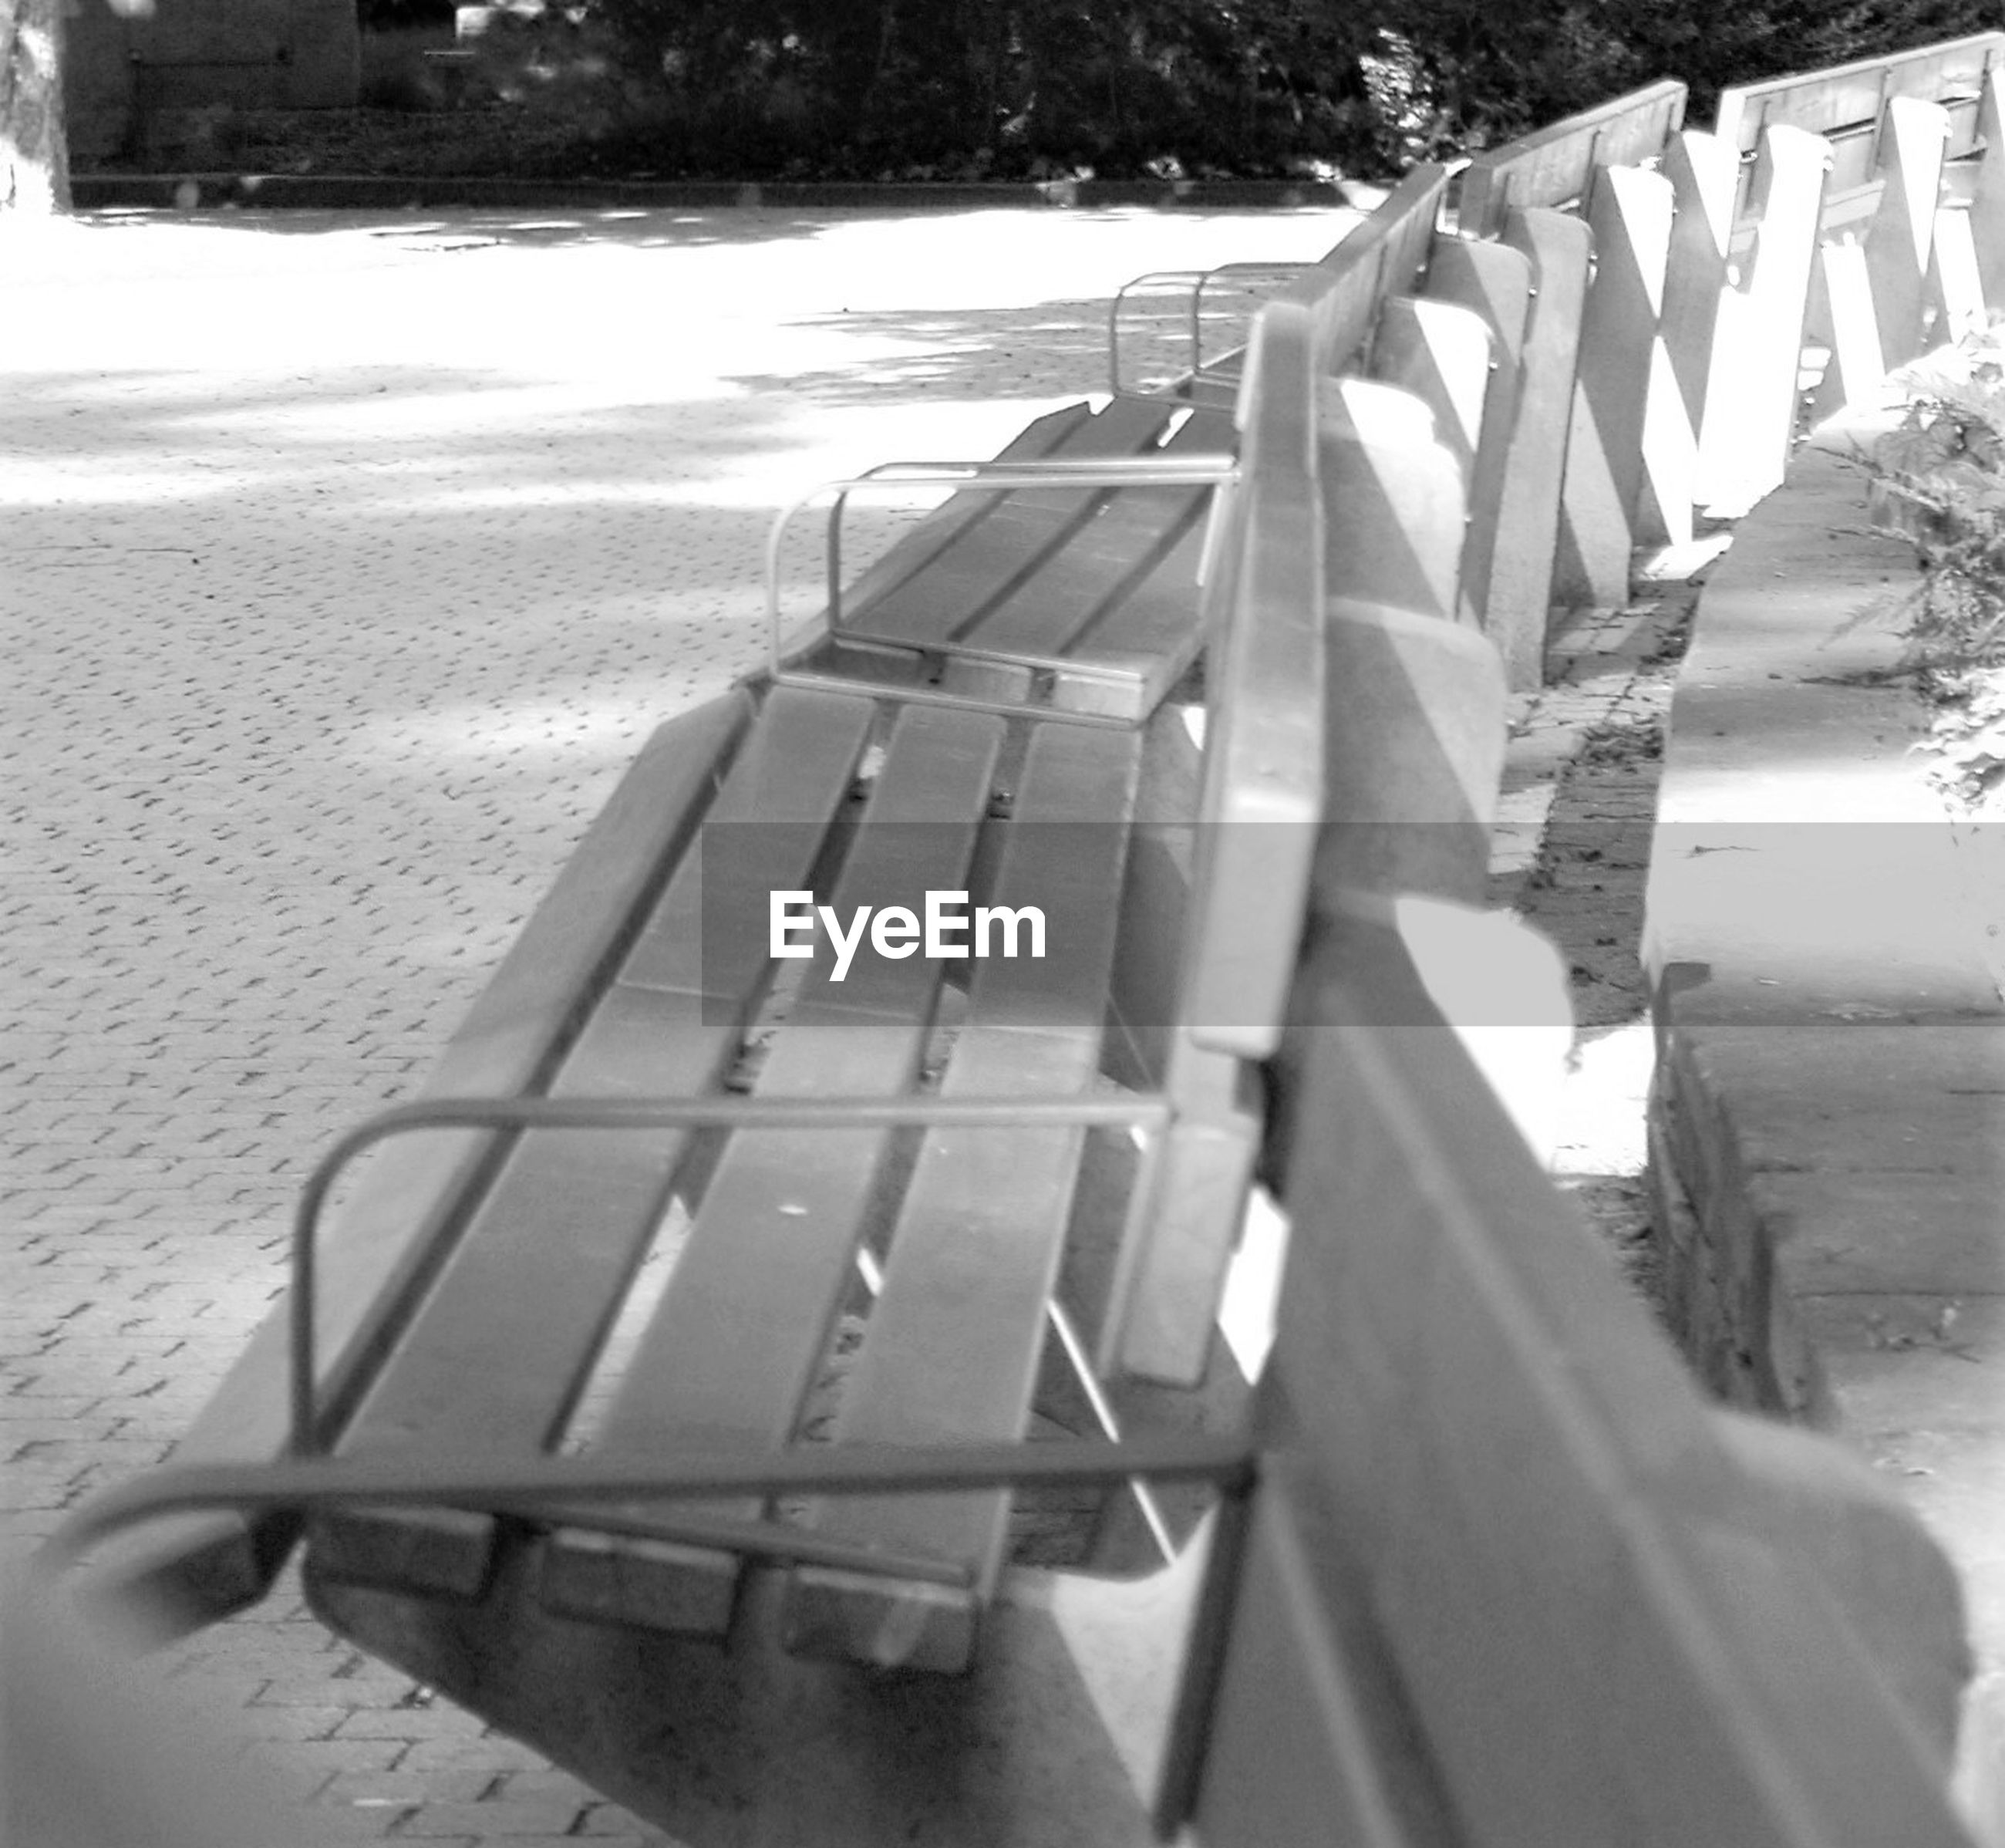 EMPTY BENCHES IN PARK